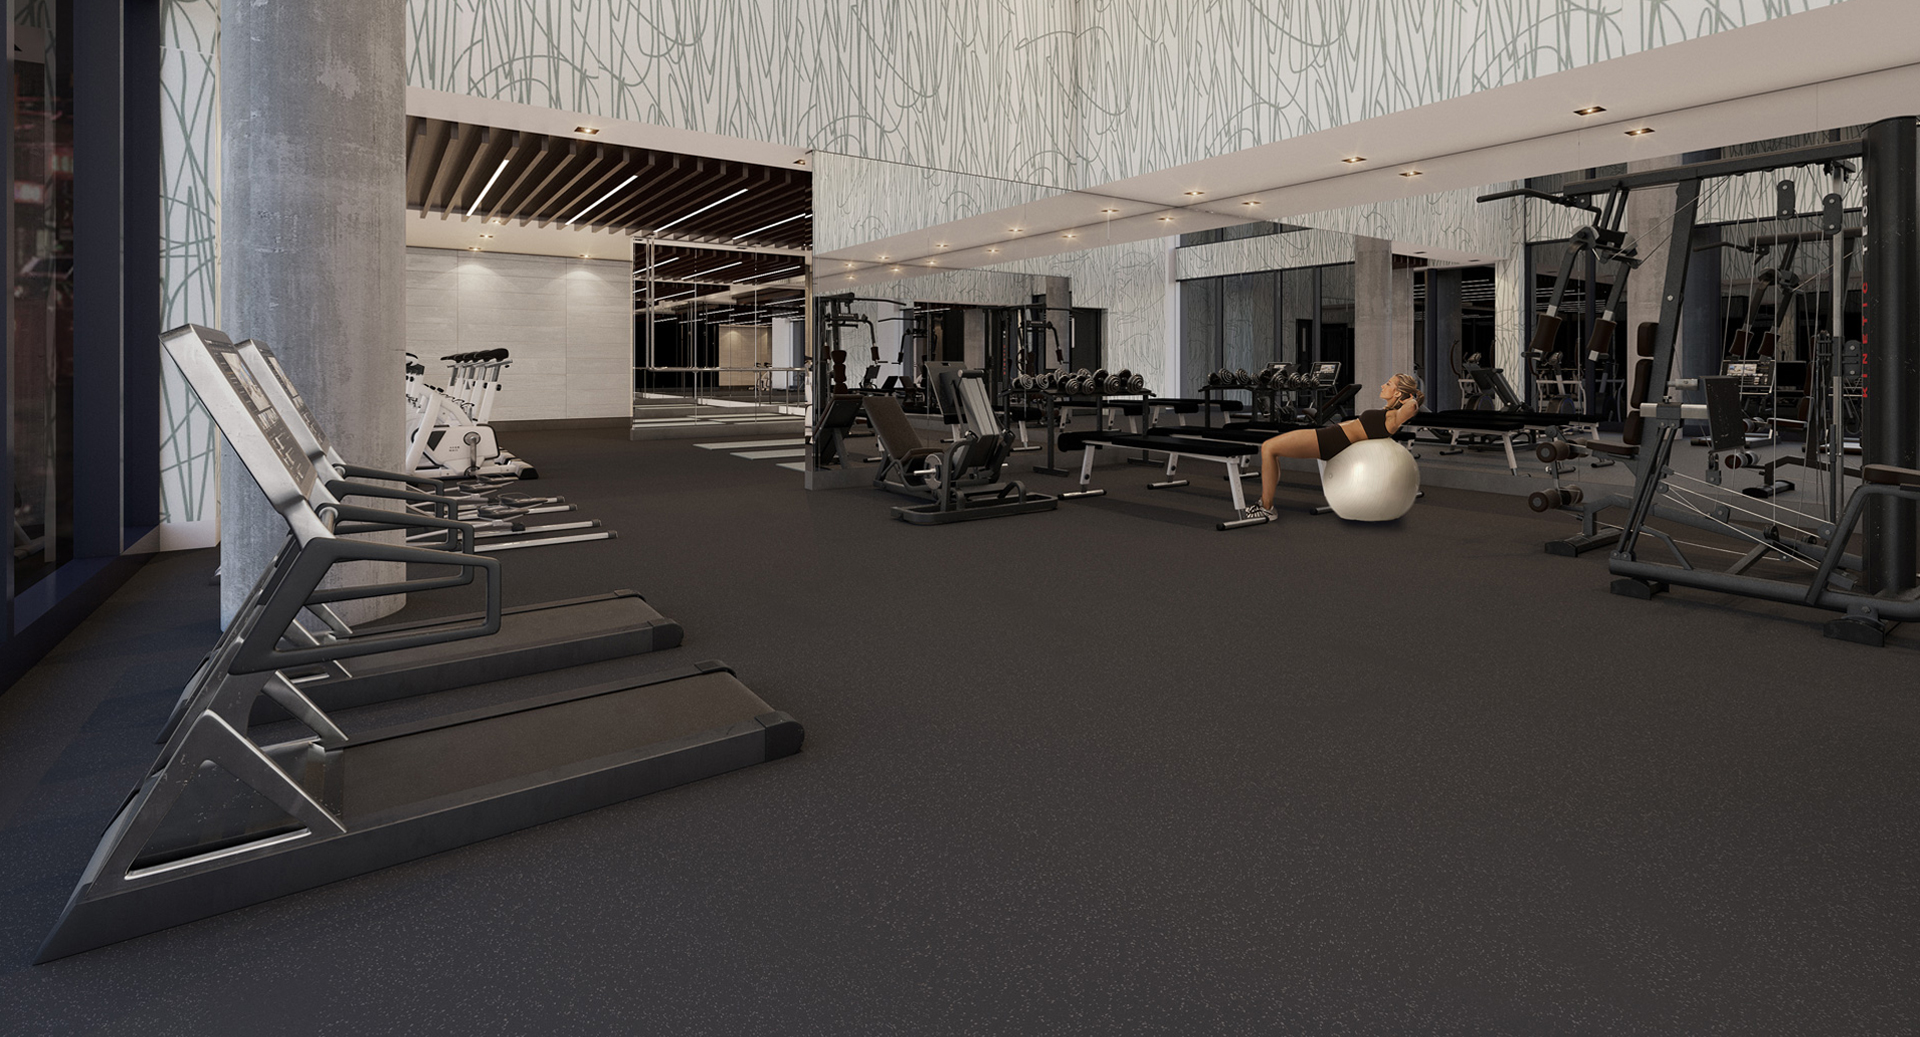 Concept art of Kingly Residences gym with weights and woman in black work-out clothes lying on exercise ball.